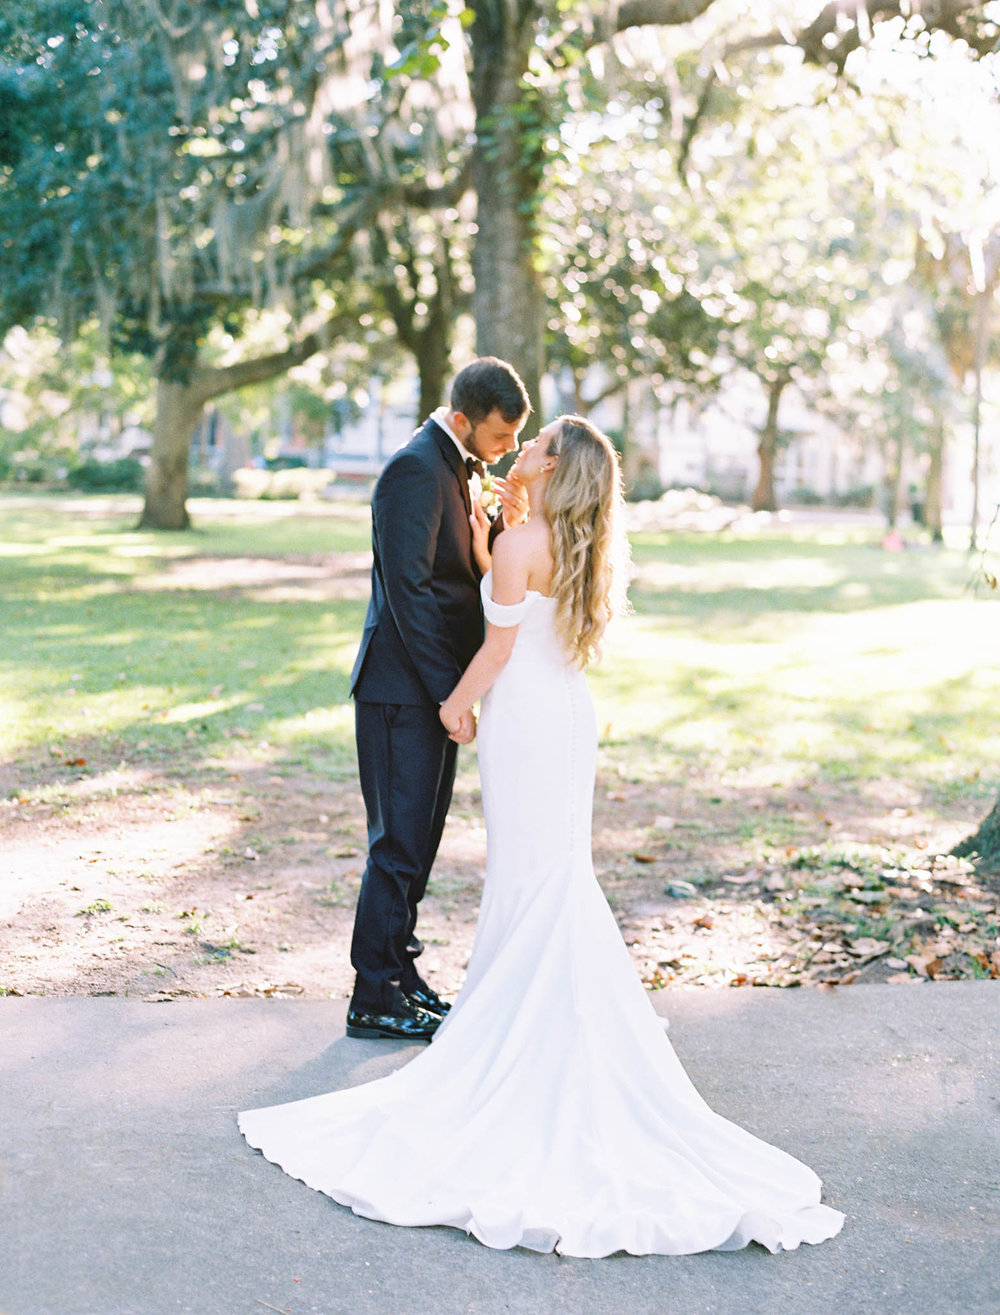 Forsyth Park wedding film photography